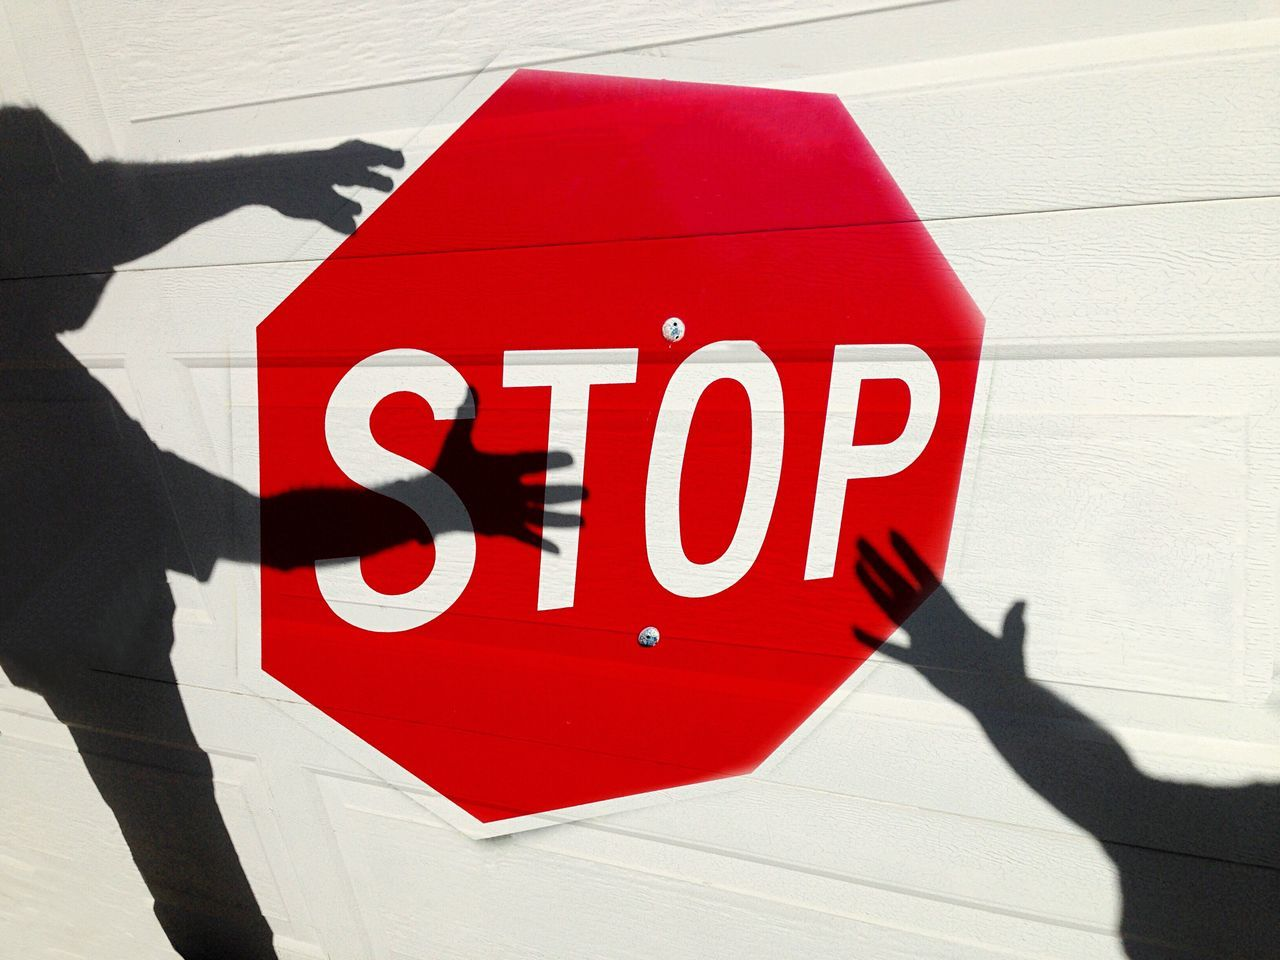 The Magic Mission Stop Stop Sign Halt Danger Protect Red Help Attack Domestic Violence Abuse Abused Molest Stop Violence Against Women!!! Violence Violent Stop Bullying Bully Bullying Stop The Killing Threat Threatening Helpless Just Say No Help Me